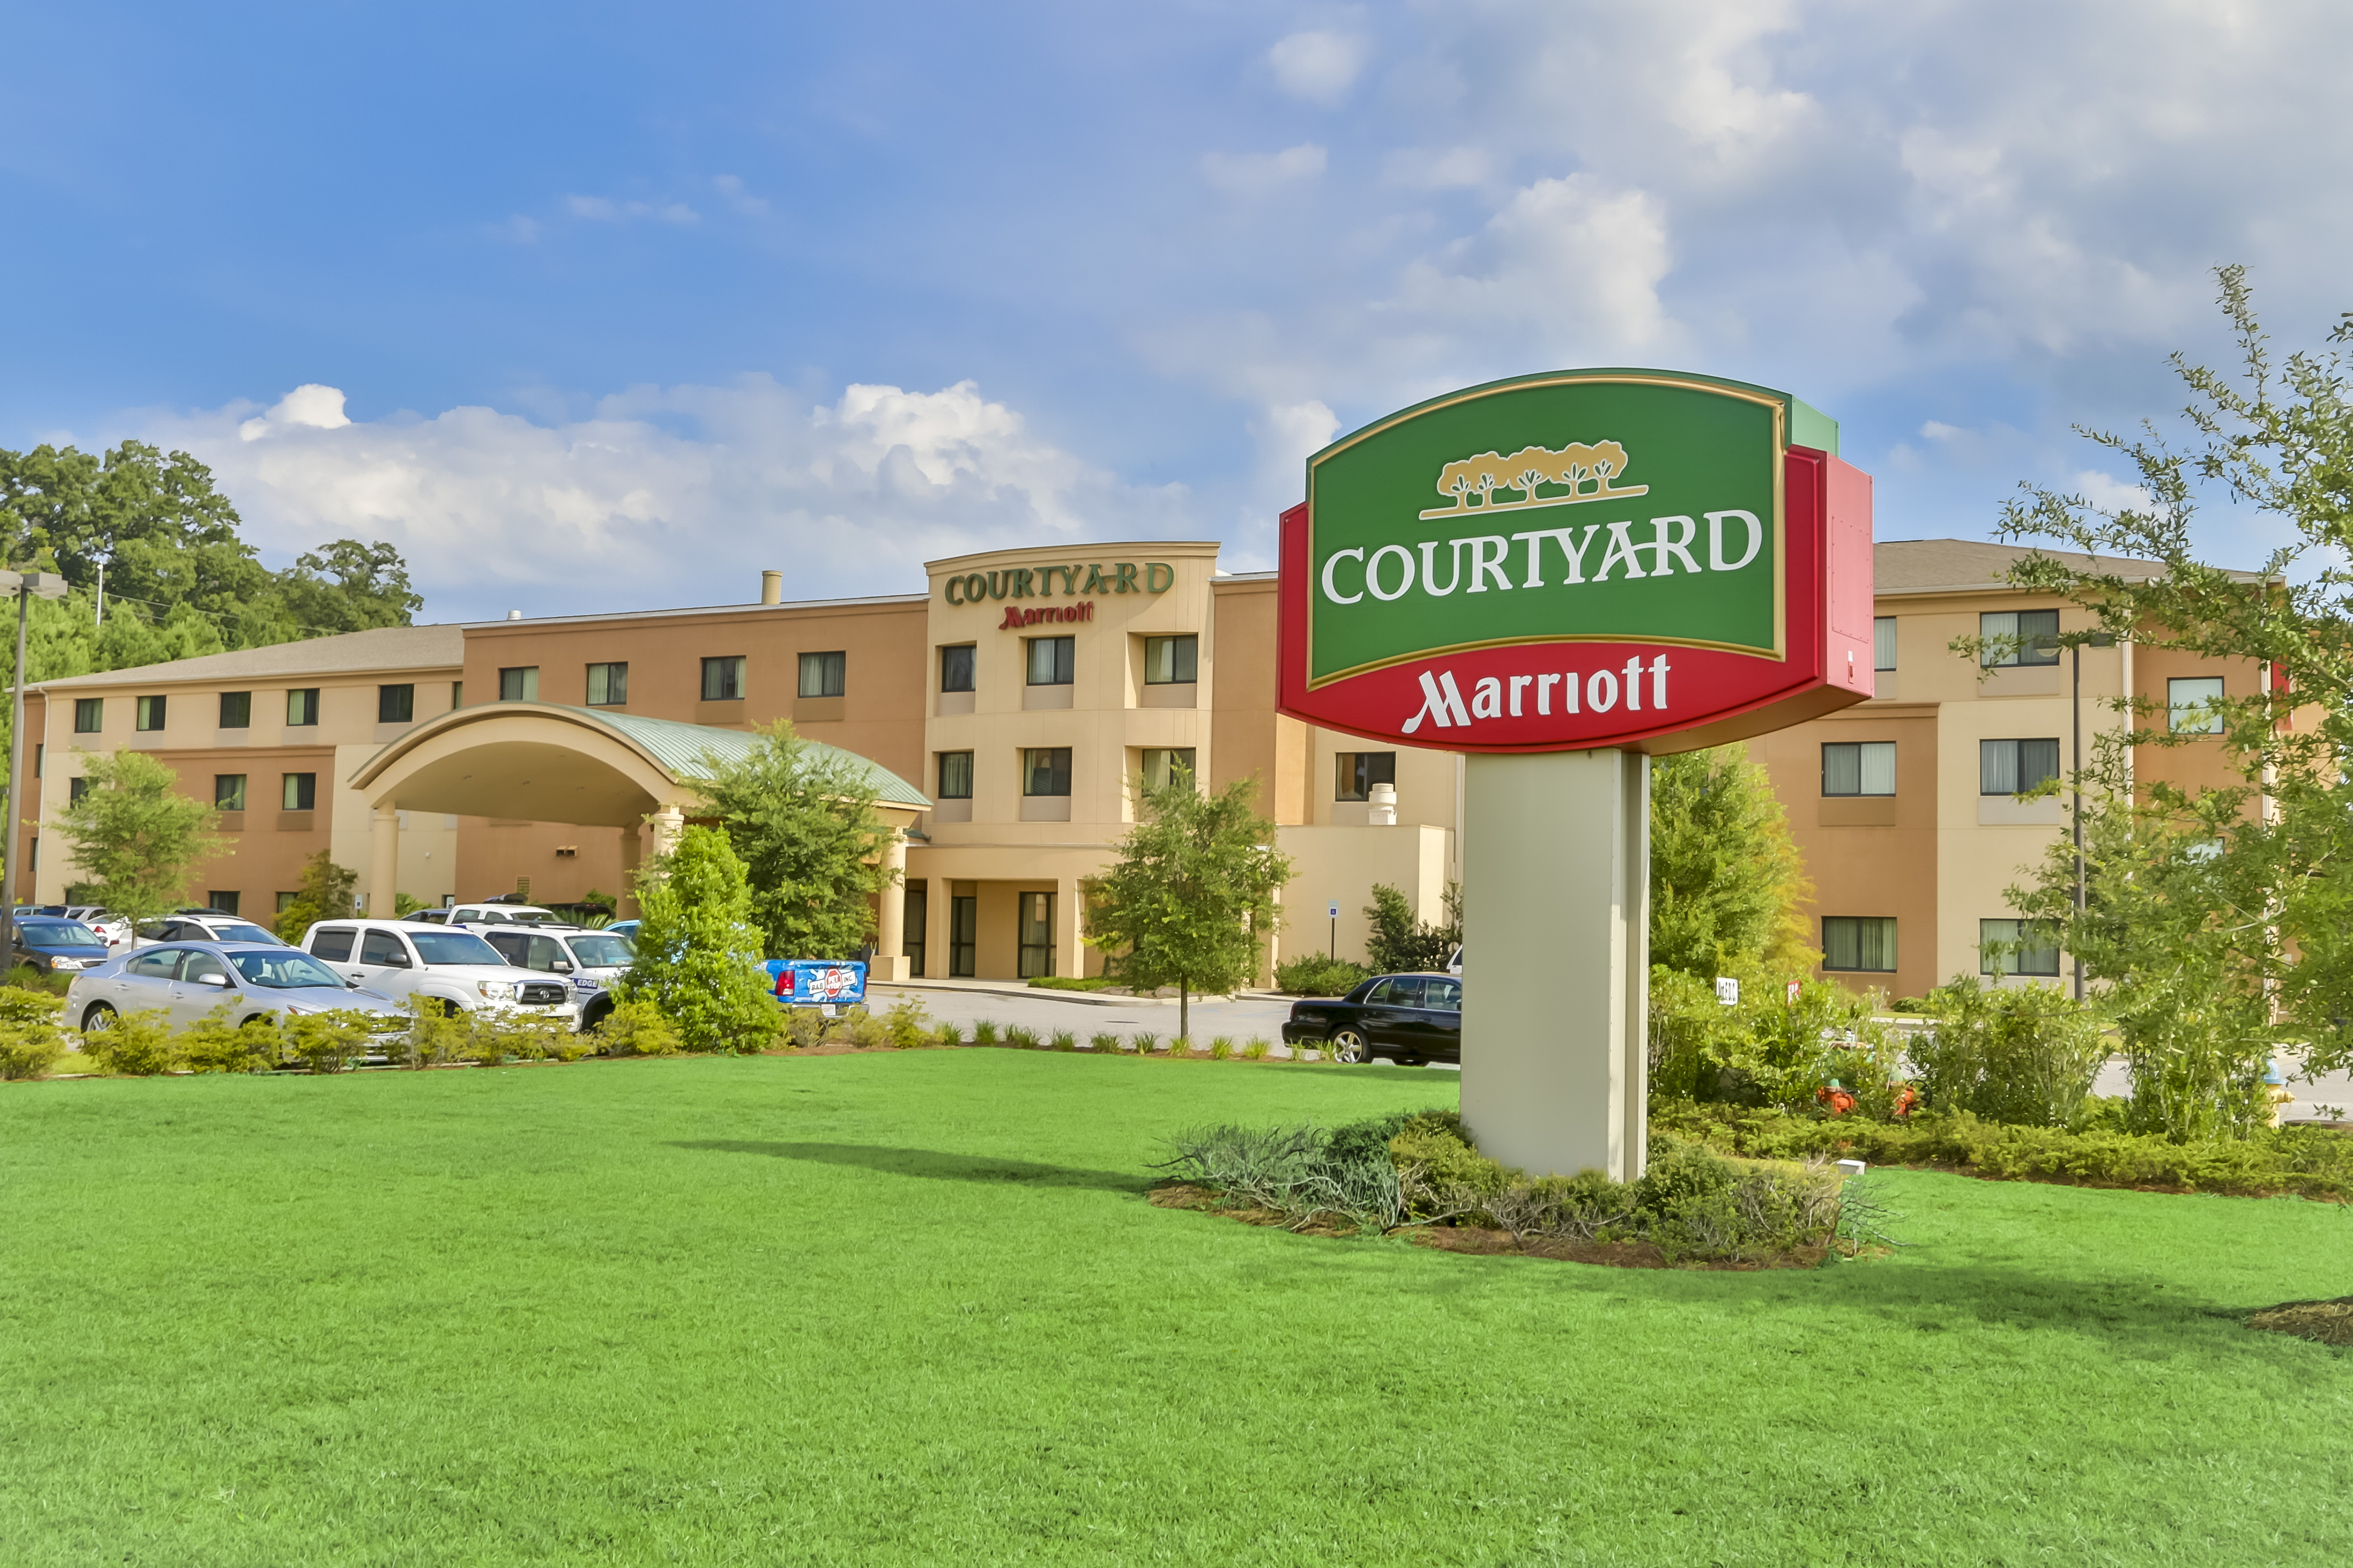 Courtyard Marriott Mobile/Daphne, Eastern Shore